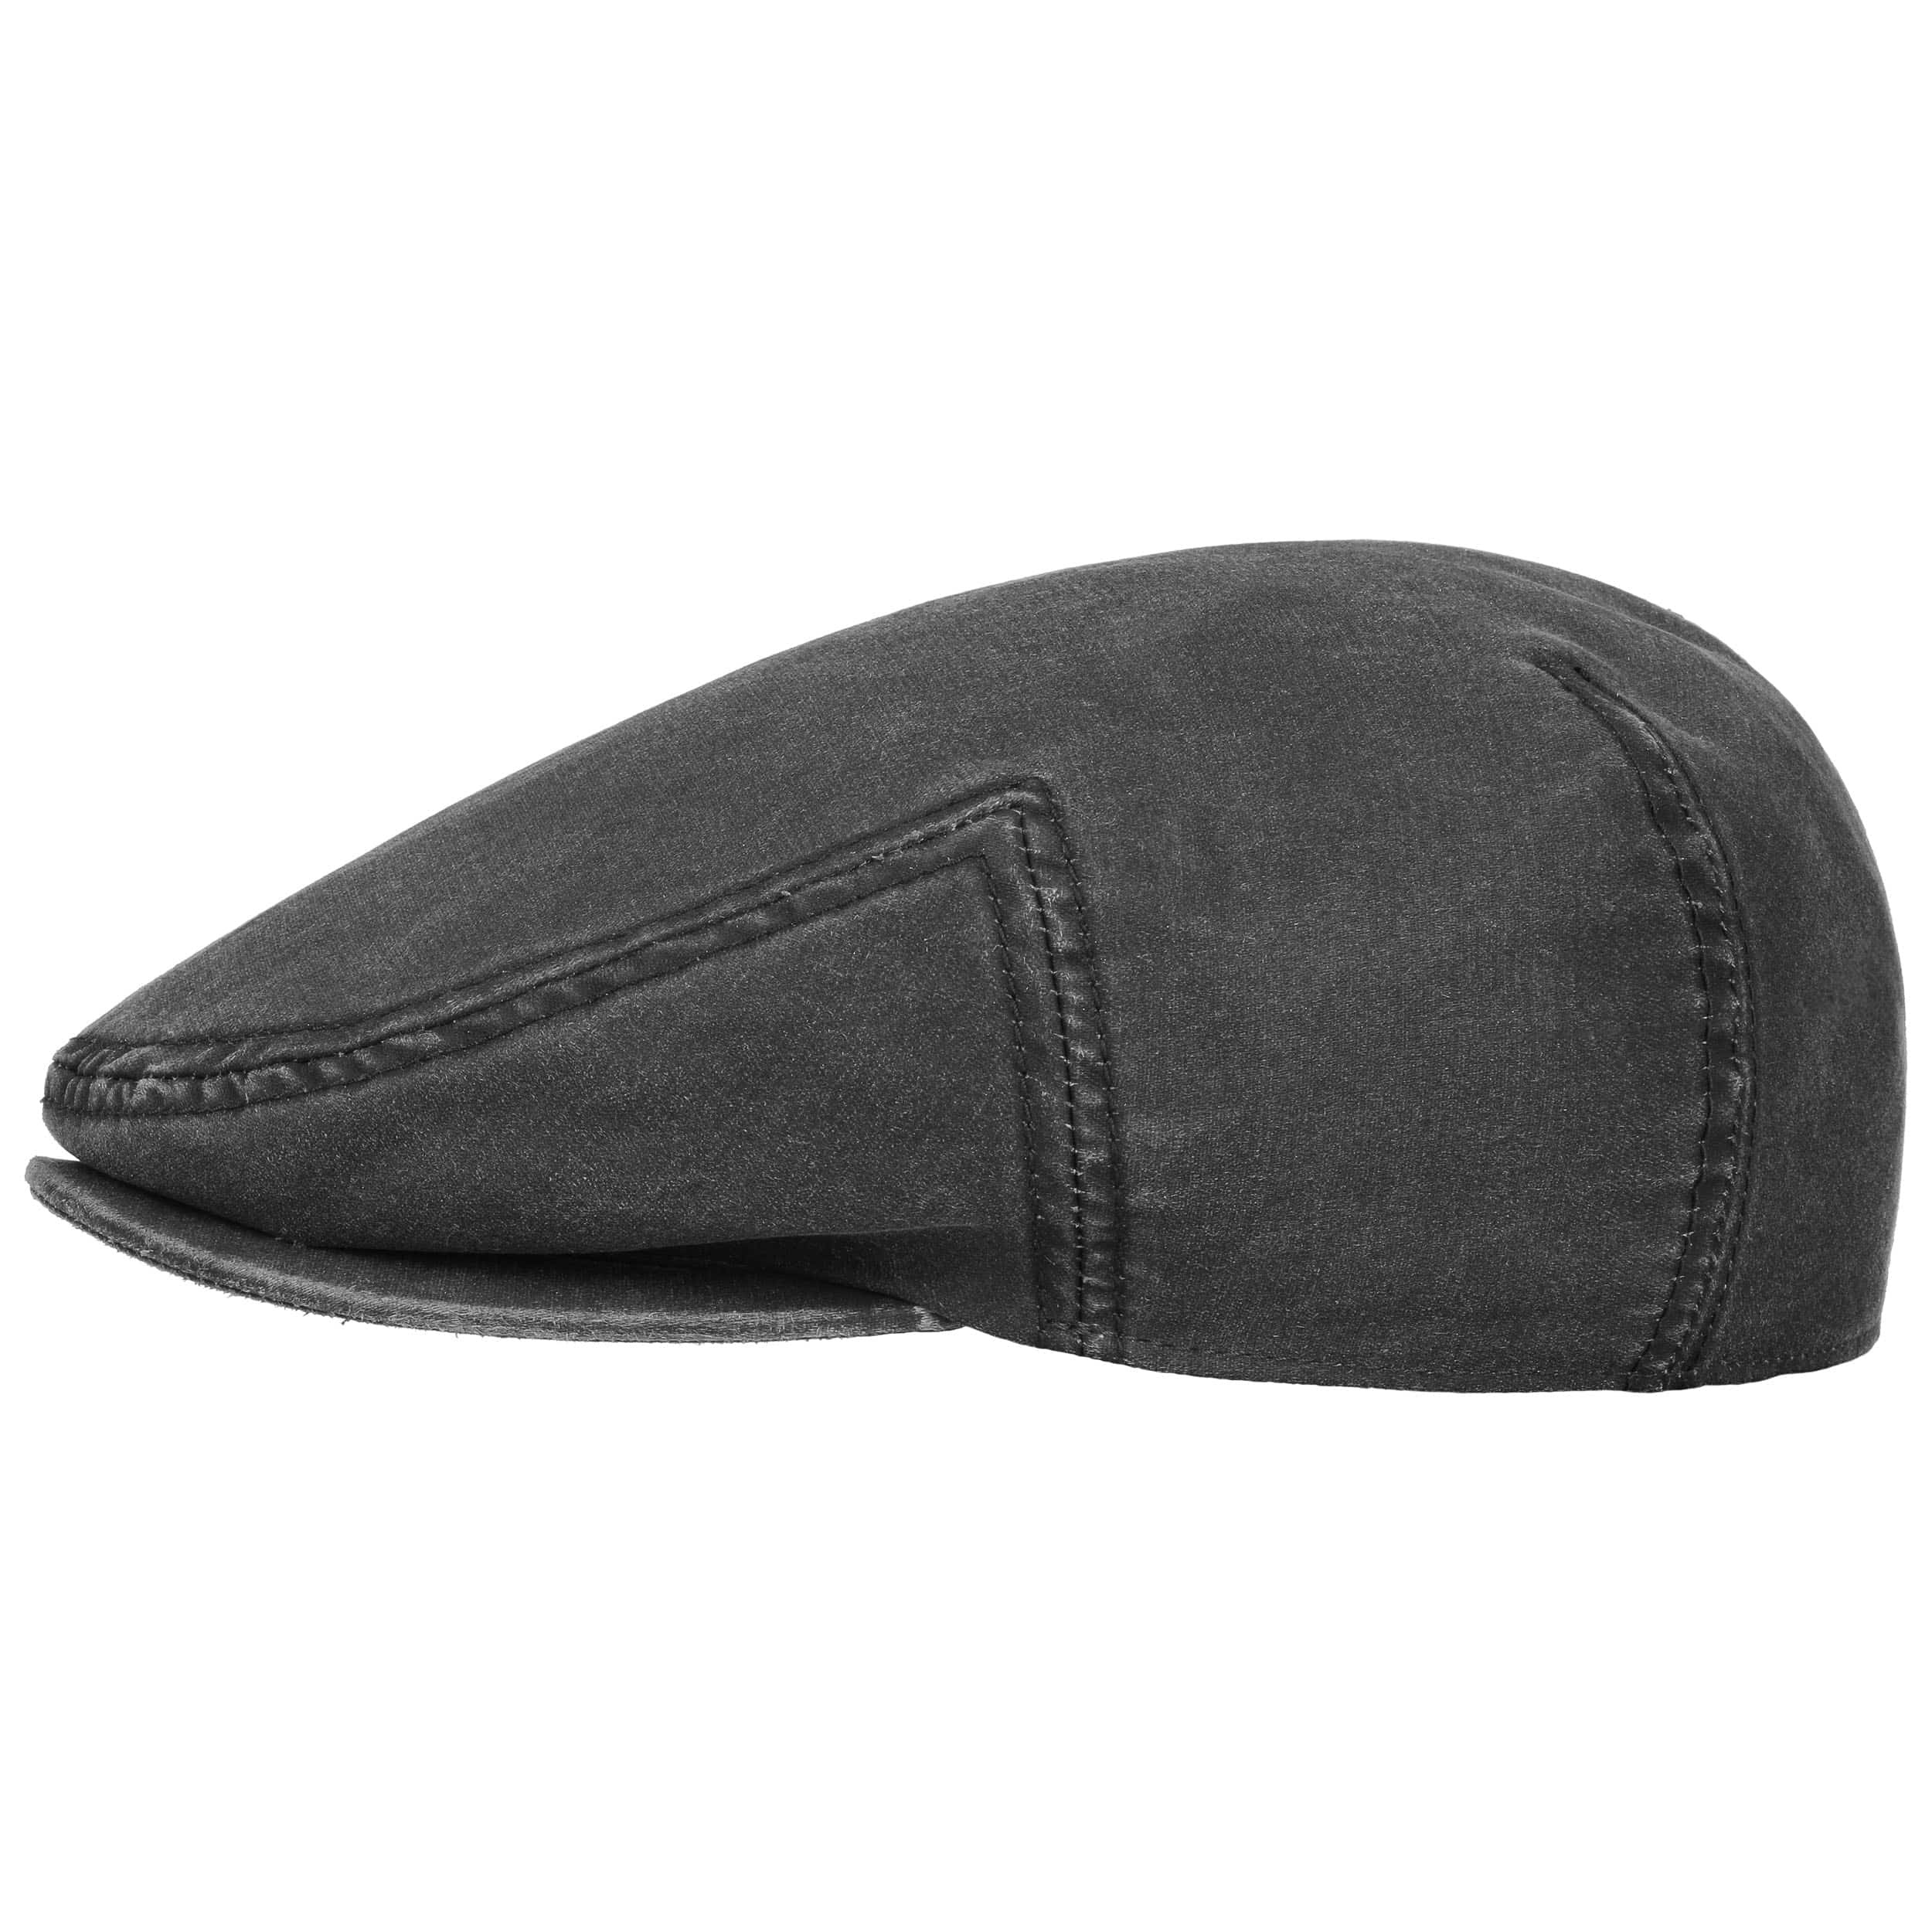 6525ff2eaca137 ... Kent Flat Cap with Ear Flaps by Stetson - black 5 ...